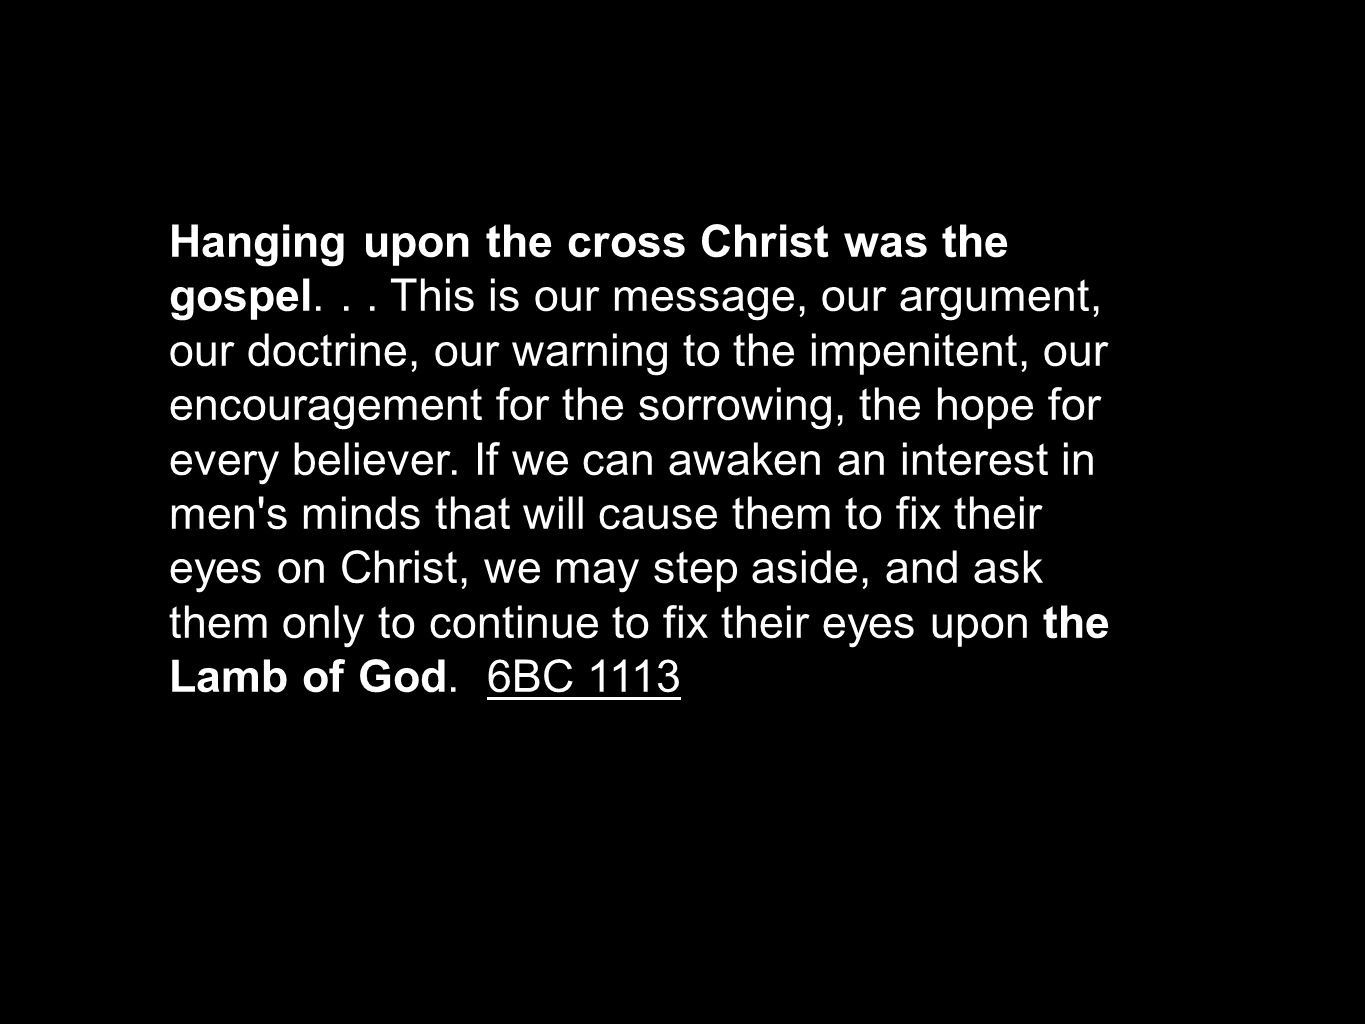 Hanging upon the cross Christ was the gospel...